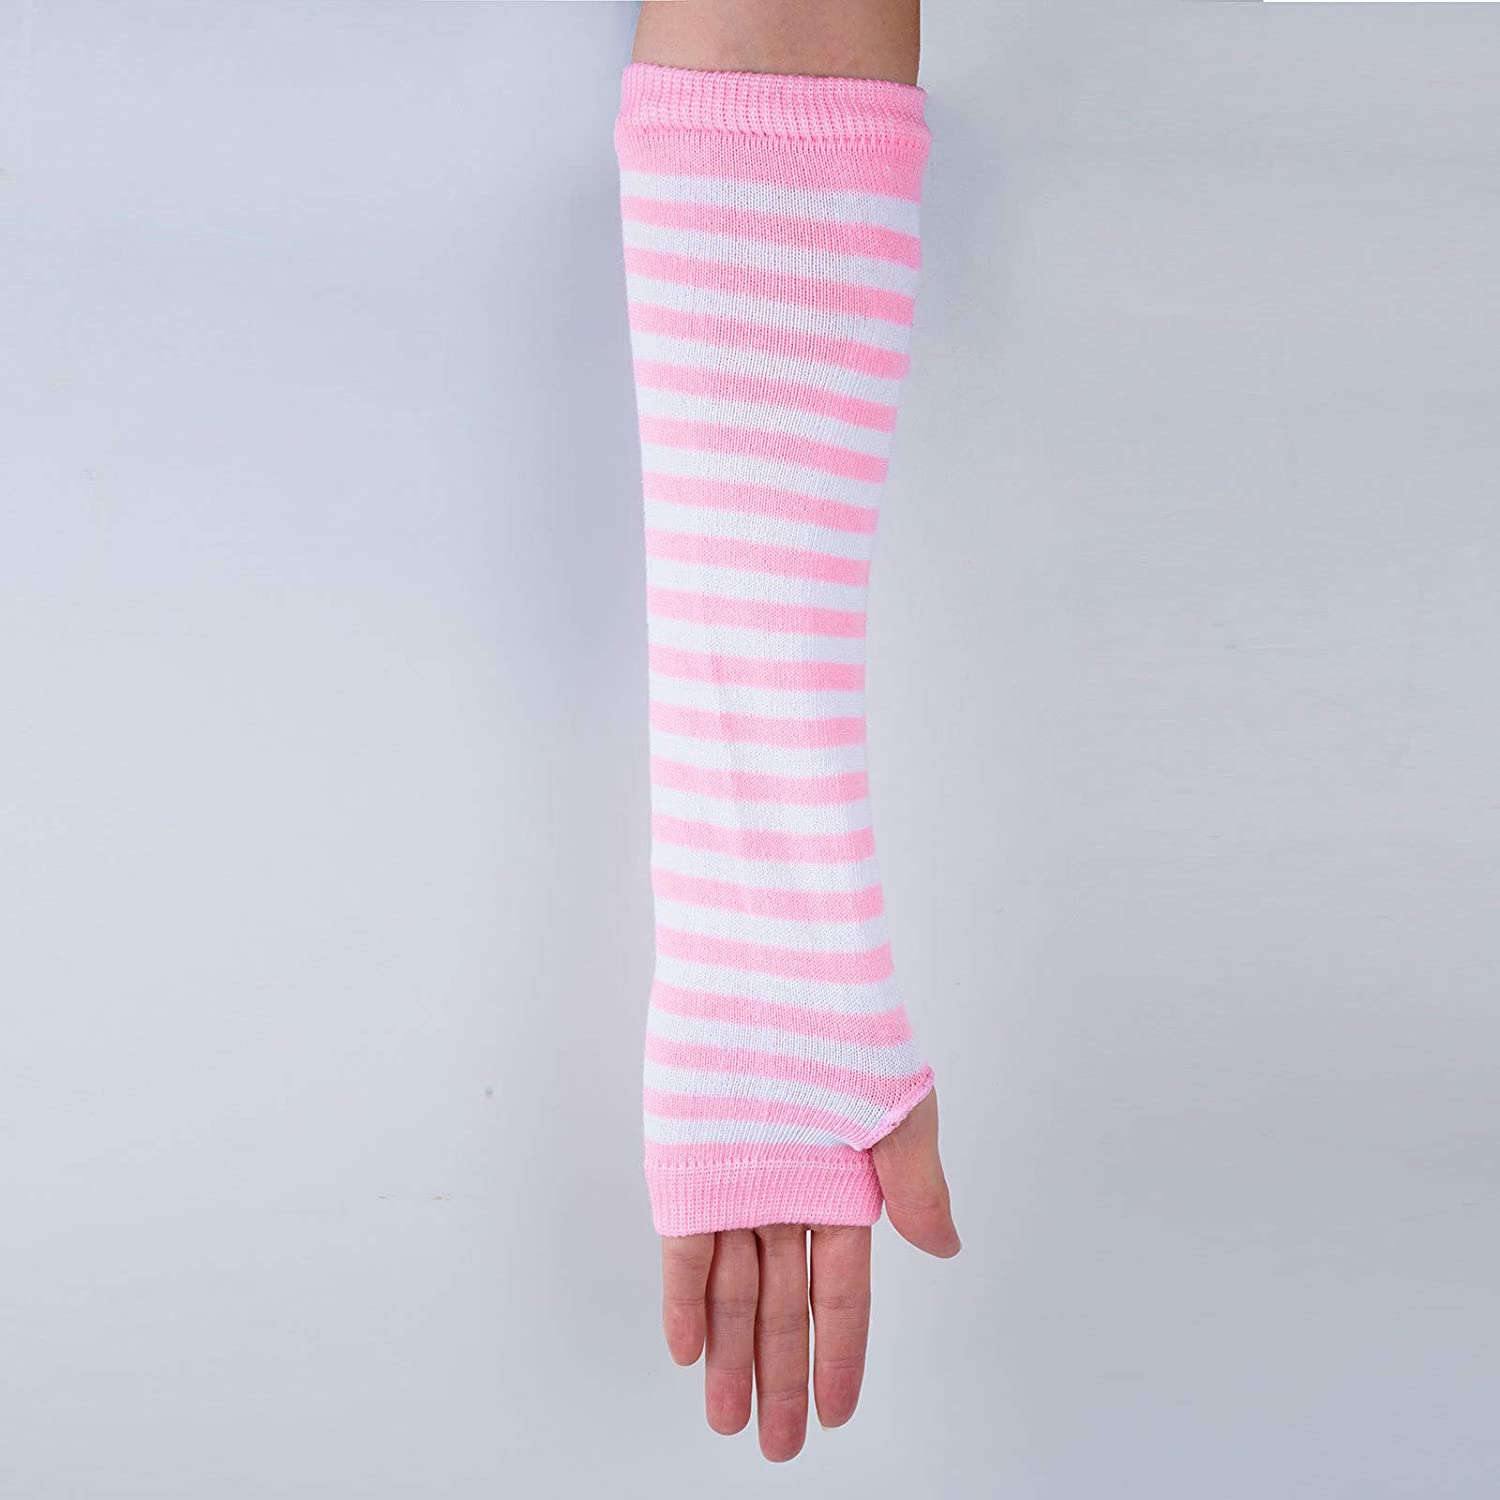 JEATHA 1 Pair Fashion Fingerless Gloves Long Elbow Mittens Knit Arm Warmer Thumb Hole Knitted Gloves for Women Girls